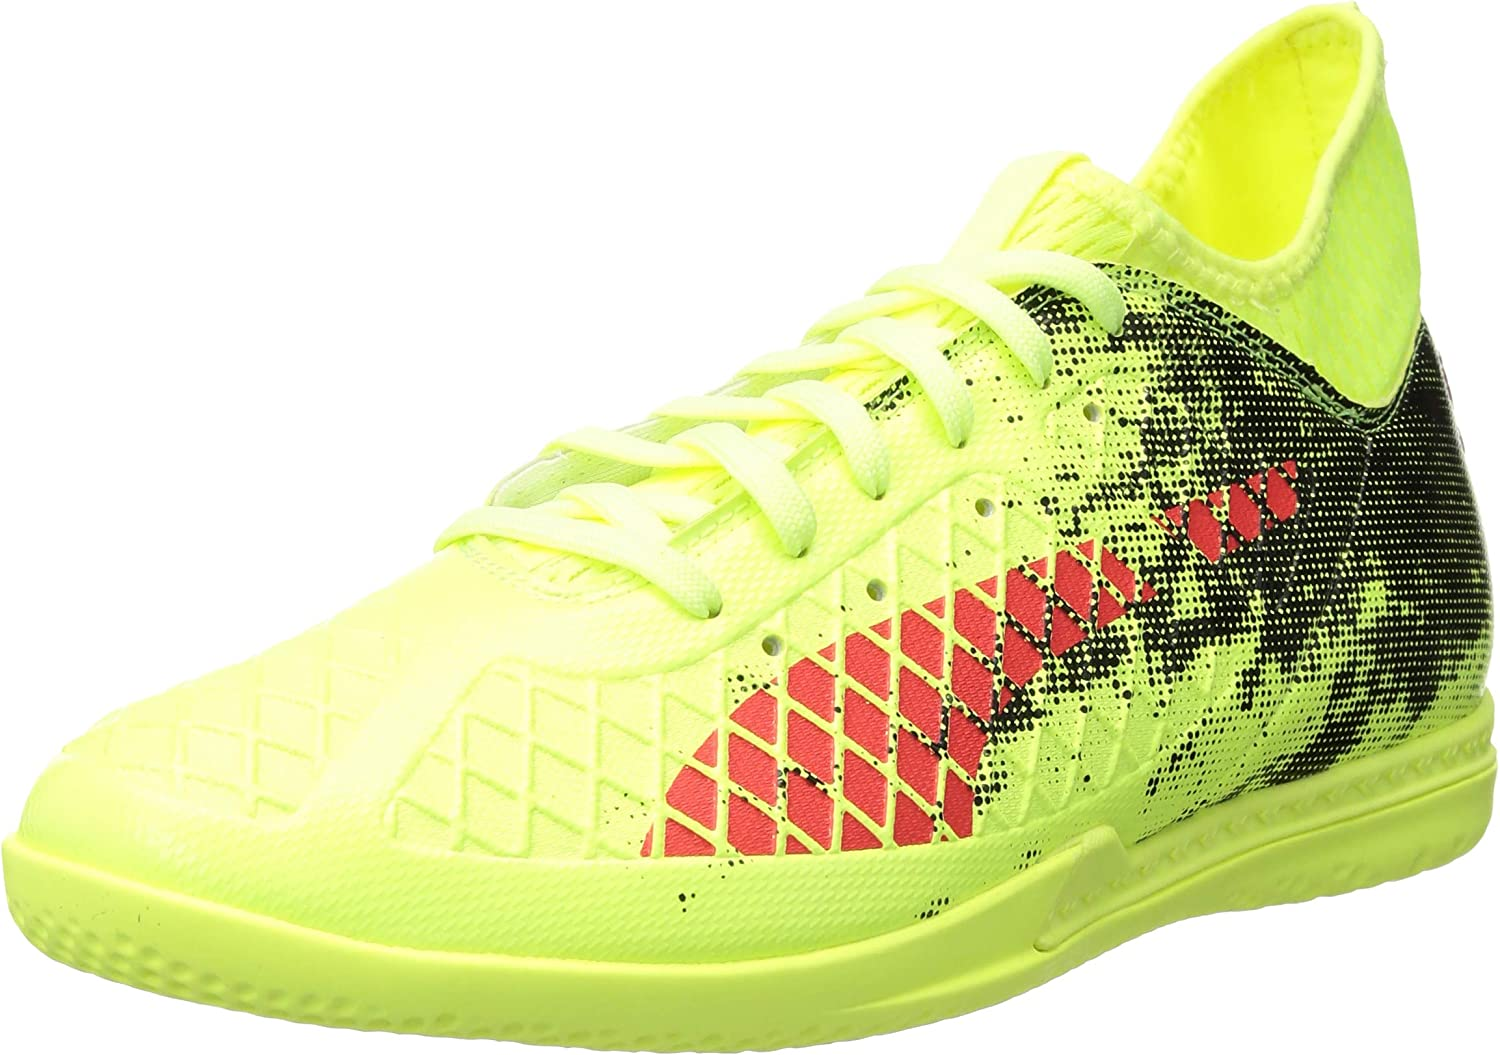 PUMA Men's Future 18.3 Soccer-Shoe Trainer 55% OFF Courier shipping free shipping Indoor